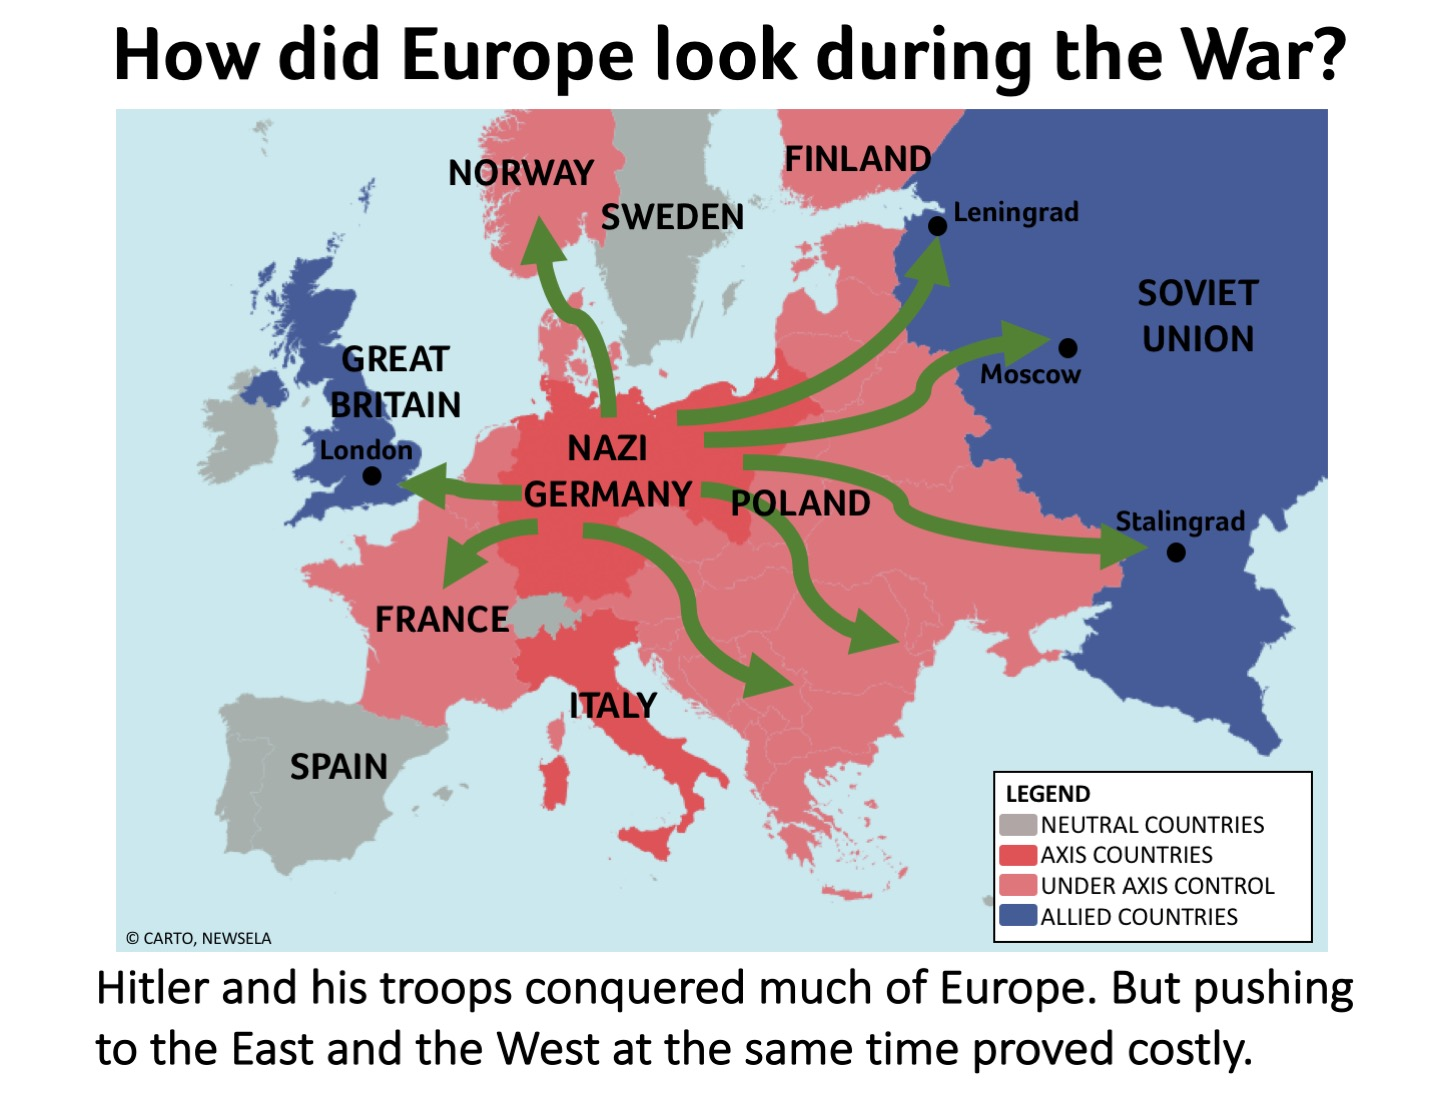 wwi wwii and the cold war Wwii set the stage for the cold war between america and the soviet union in several ways one way was the soviet occupation of eastern europe.